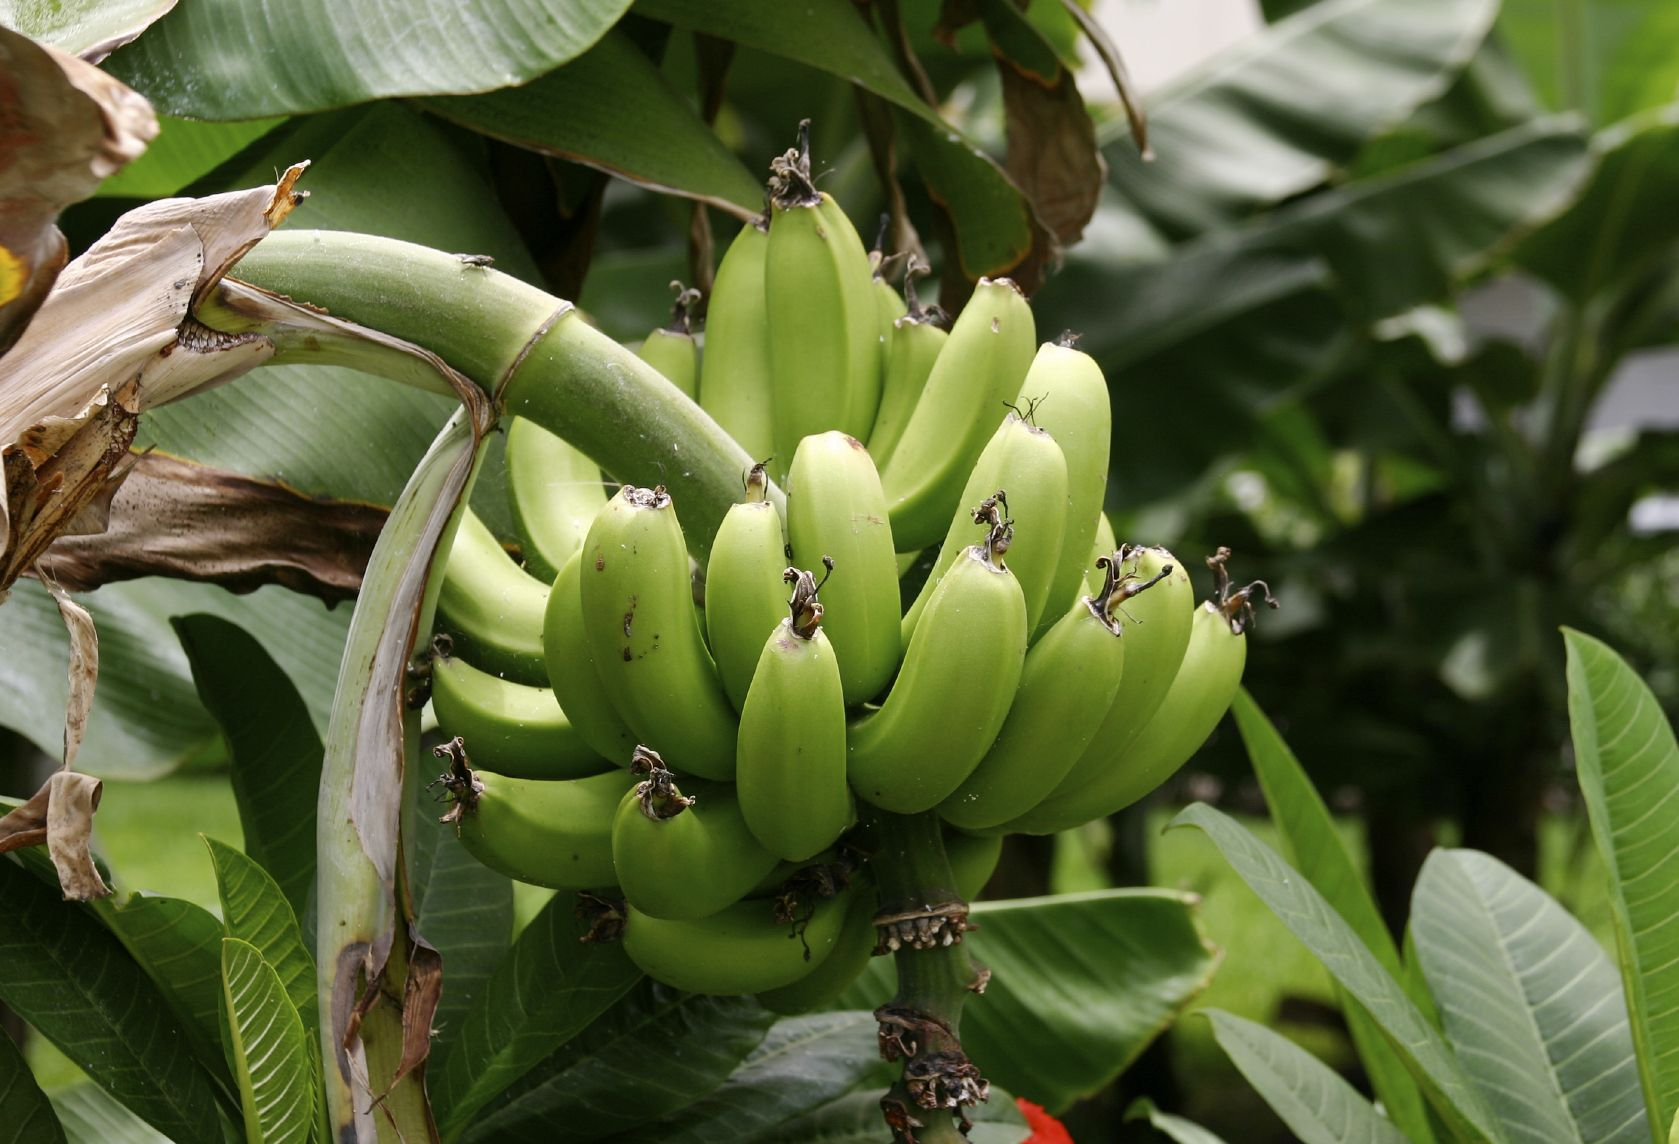 Caring For Plantain Trees Information On Growing Plantains Plantain Plant Plant Care Growing Vegetables